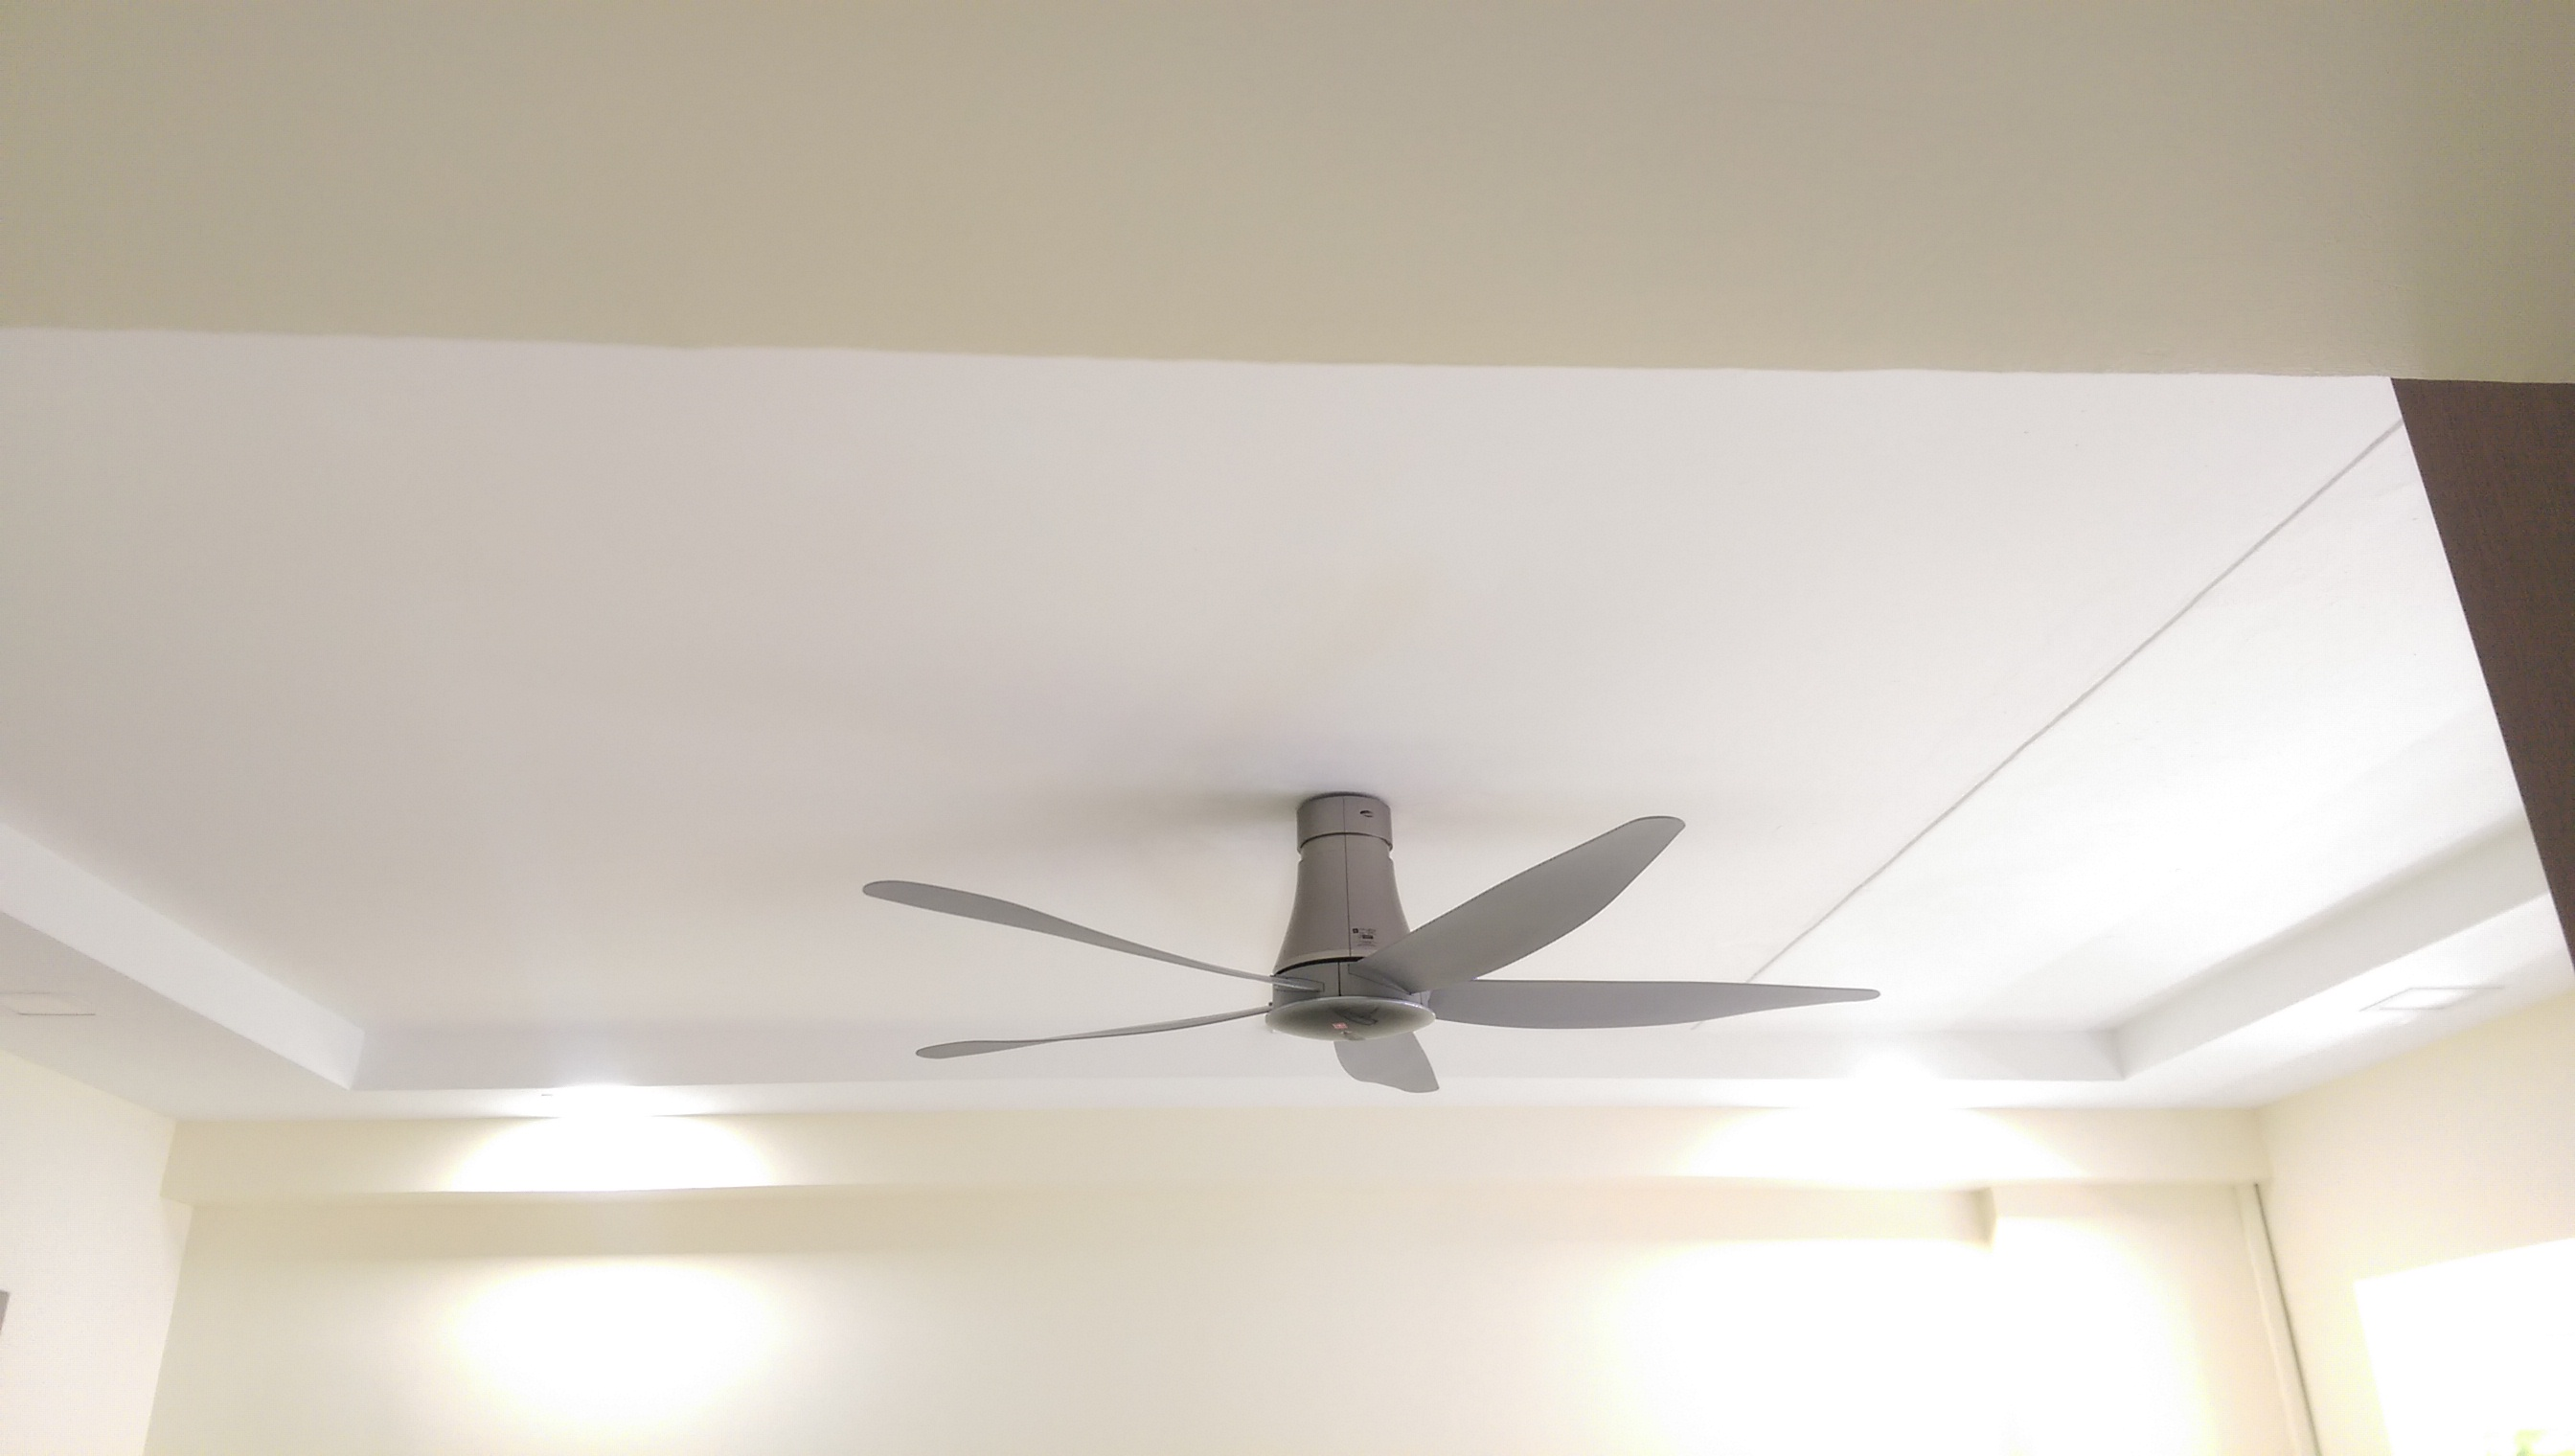 Ceiling Fan Singapore Kdk Ceiling Fan Fanco Ceiling